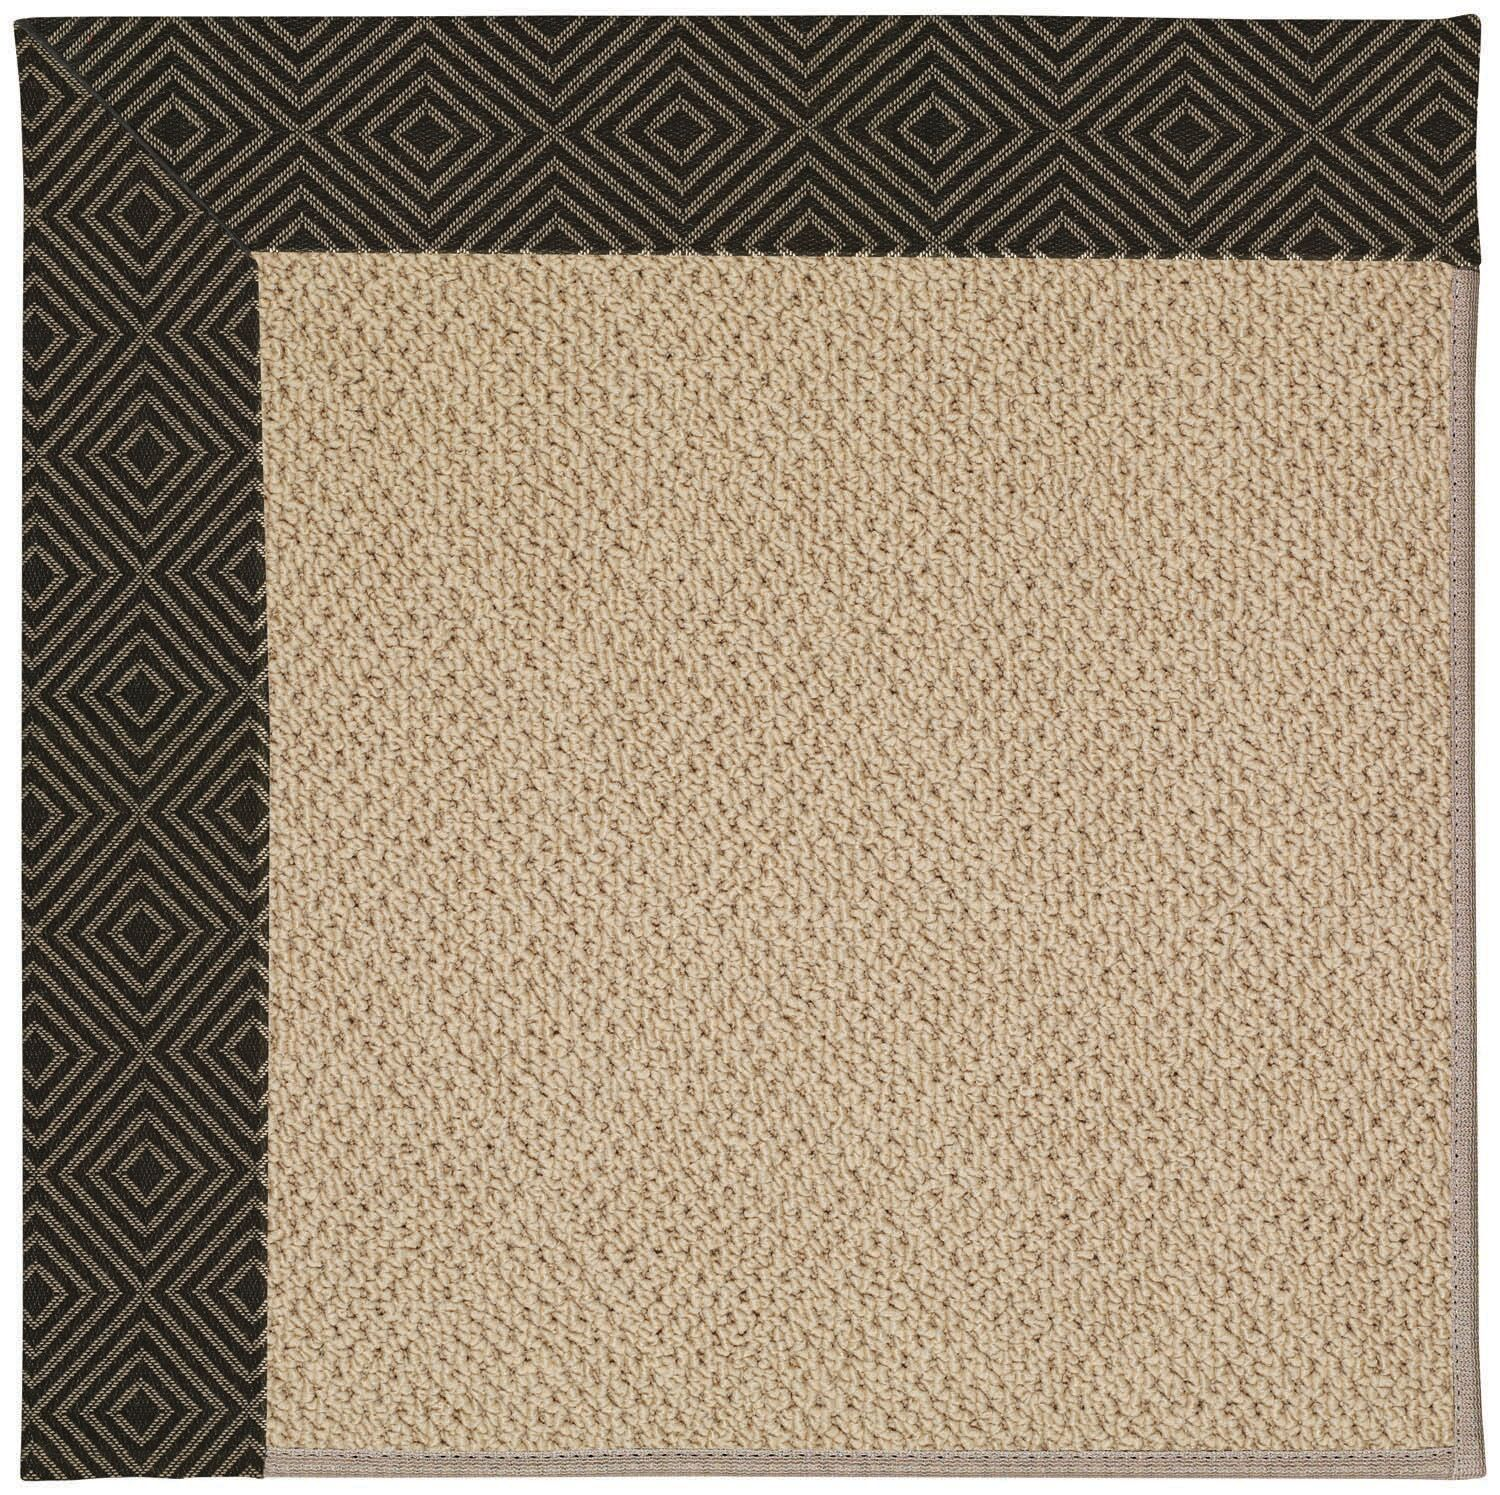 Lisle Machine Tufted Magma/Brown Indoor/Outdoor Area Rug Rug Size: Square 8'